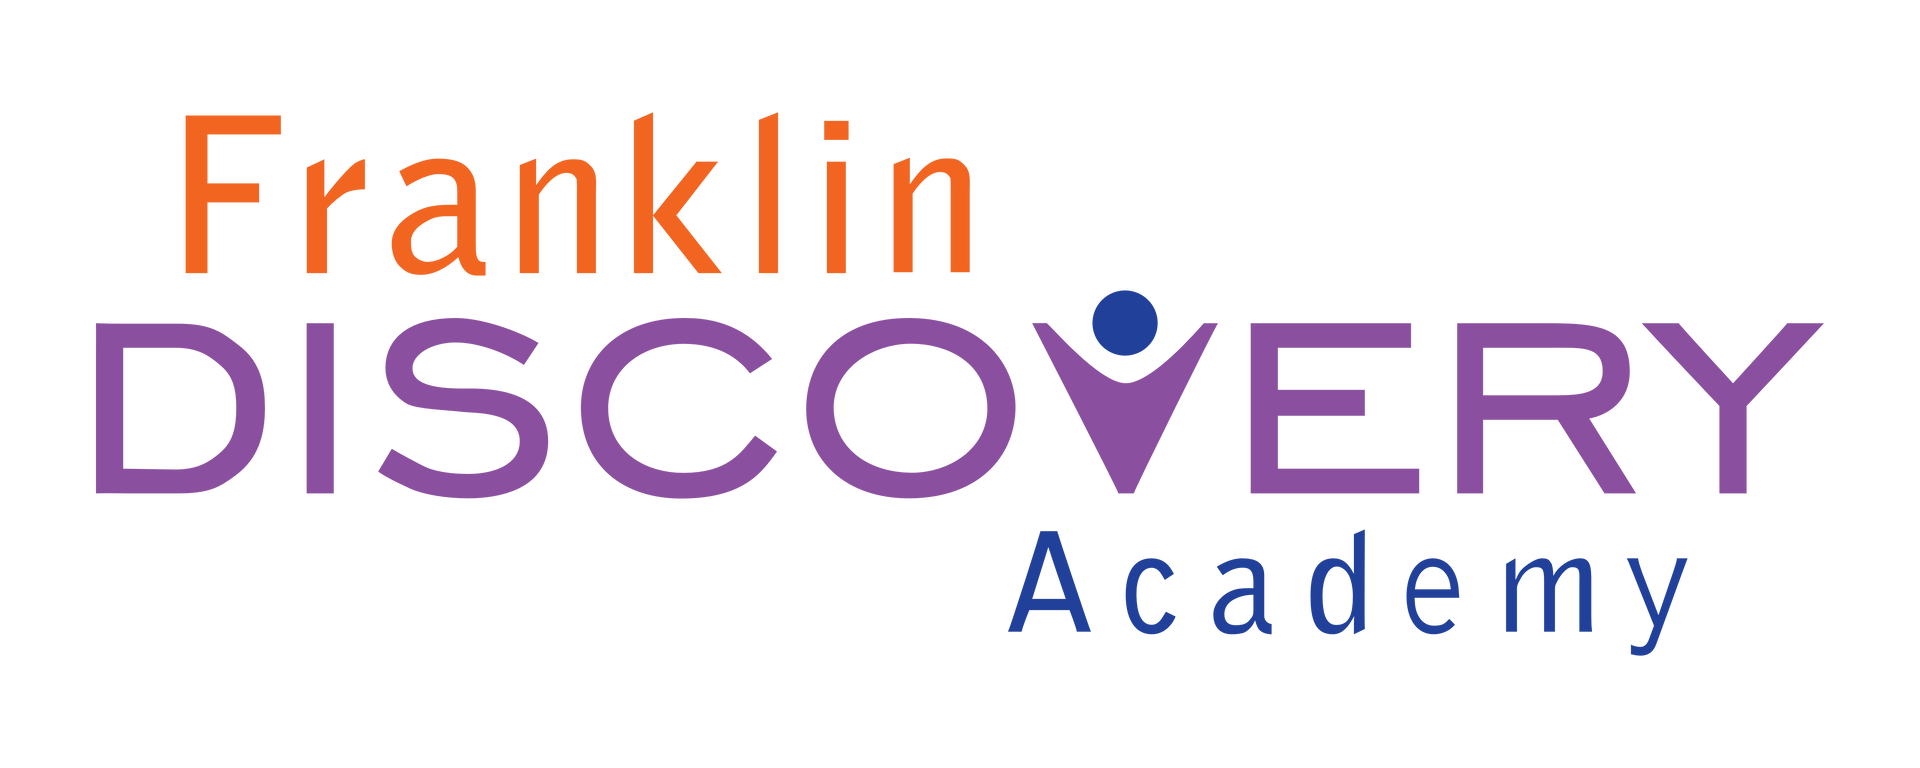 Franklin Discovery Academy.png